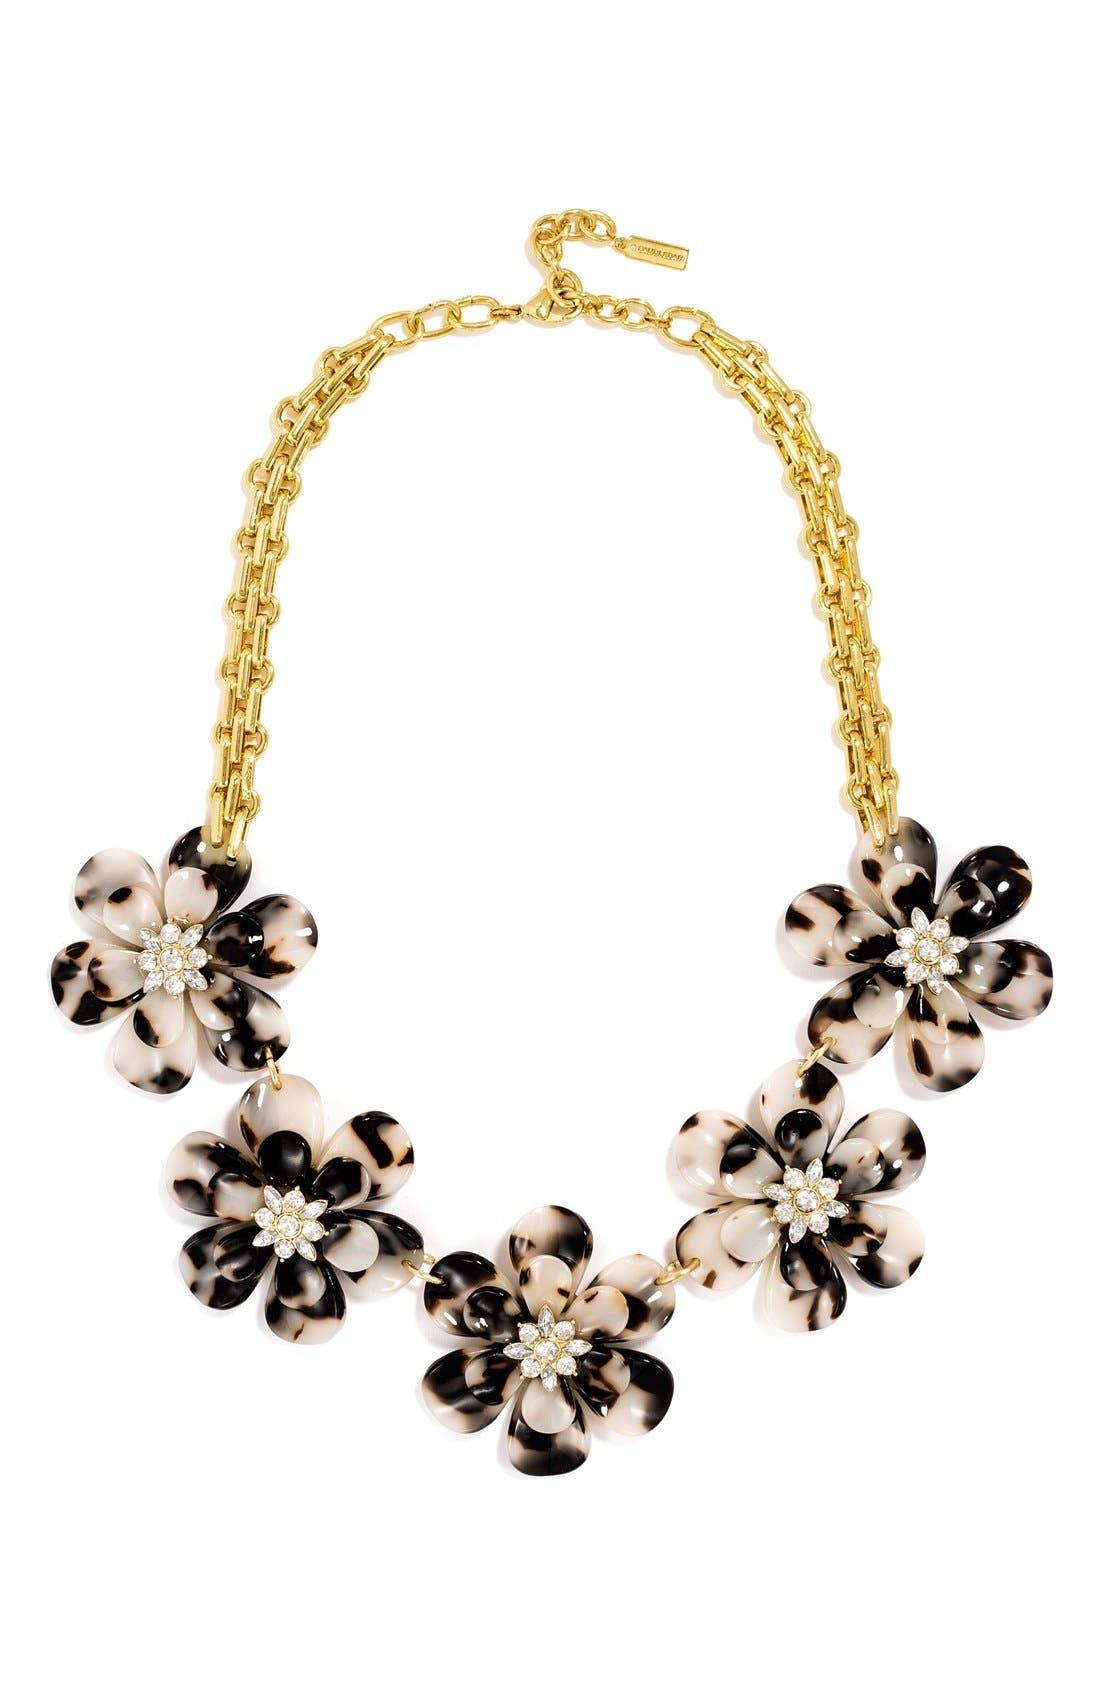 Alternate Image 1 Selected - BaubleBar 'Twiggy' Floral Collar Necklace